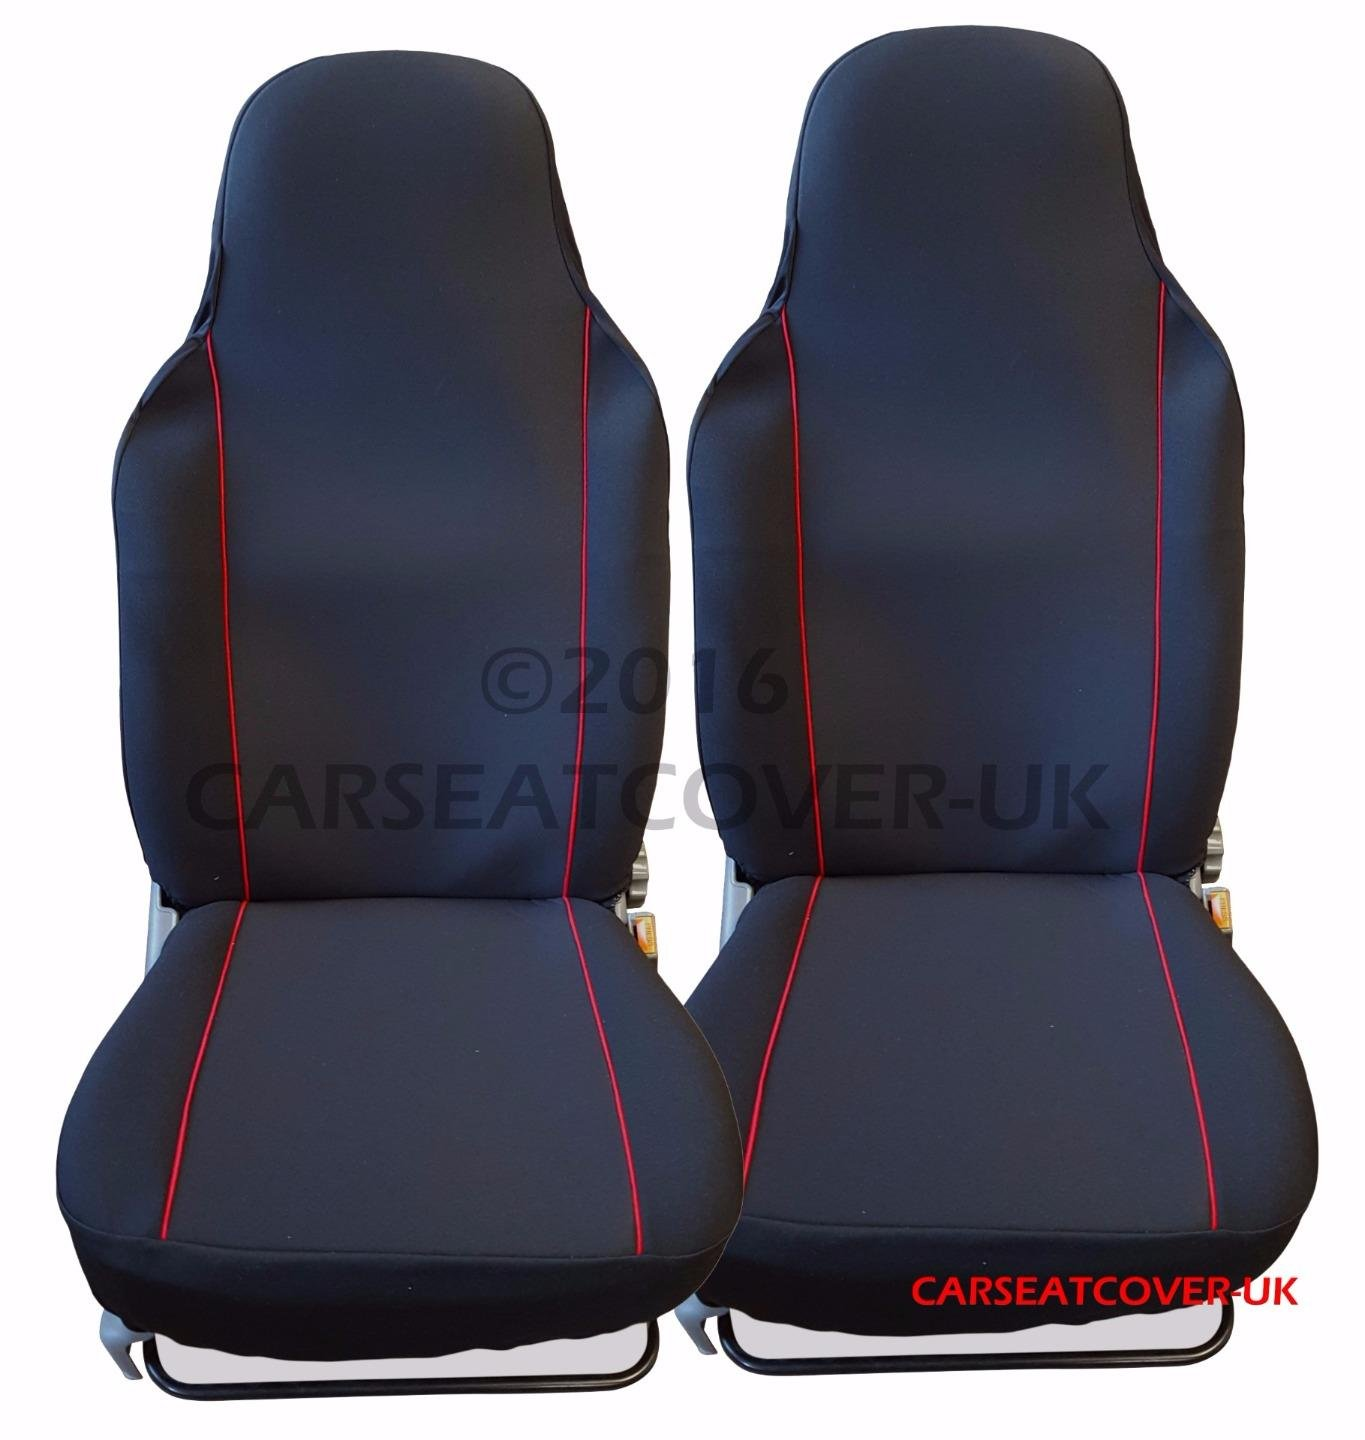 Astounding Citroen C1 Airscape Luxury Black Red Car Seat Covers 2 Theyellowbook Wood Chair Design Ideas Theyellowbookinfo